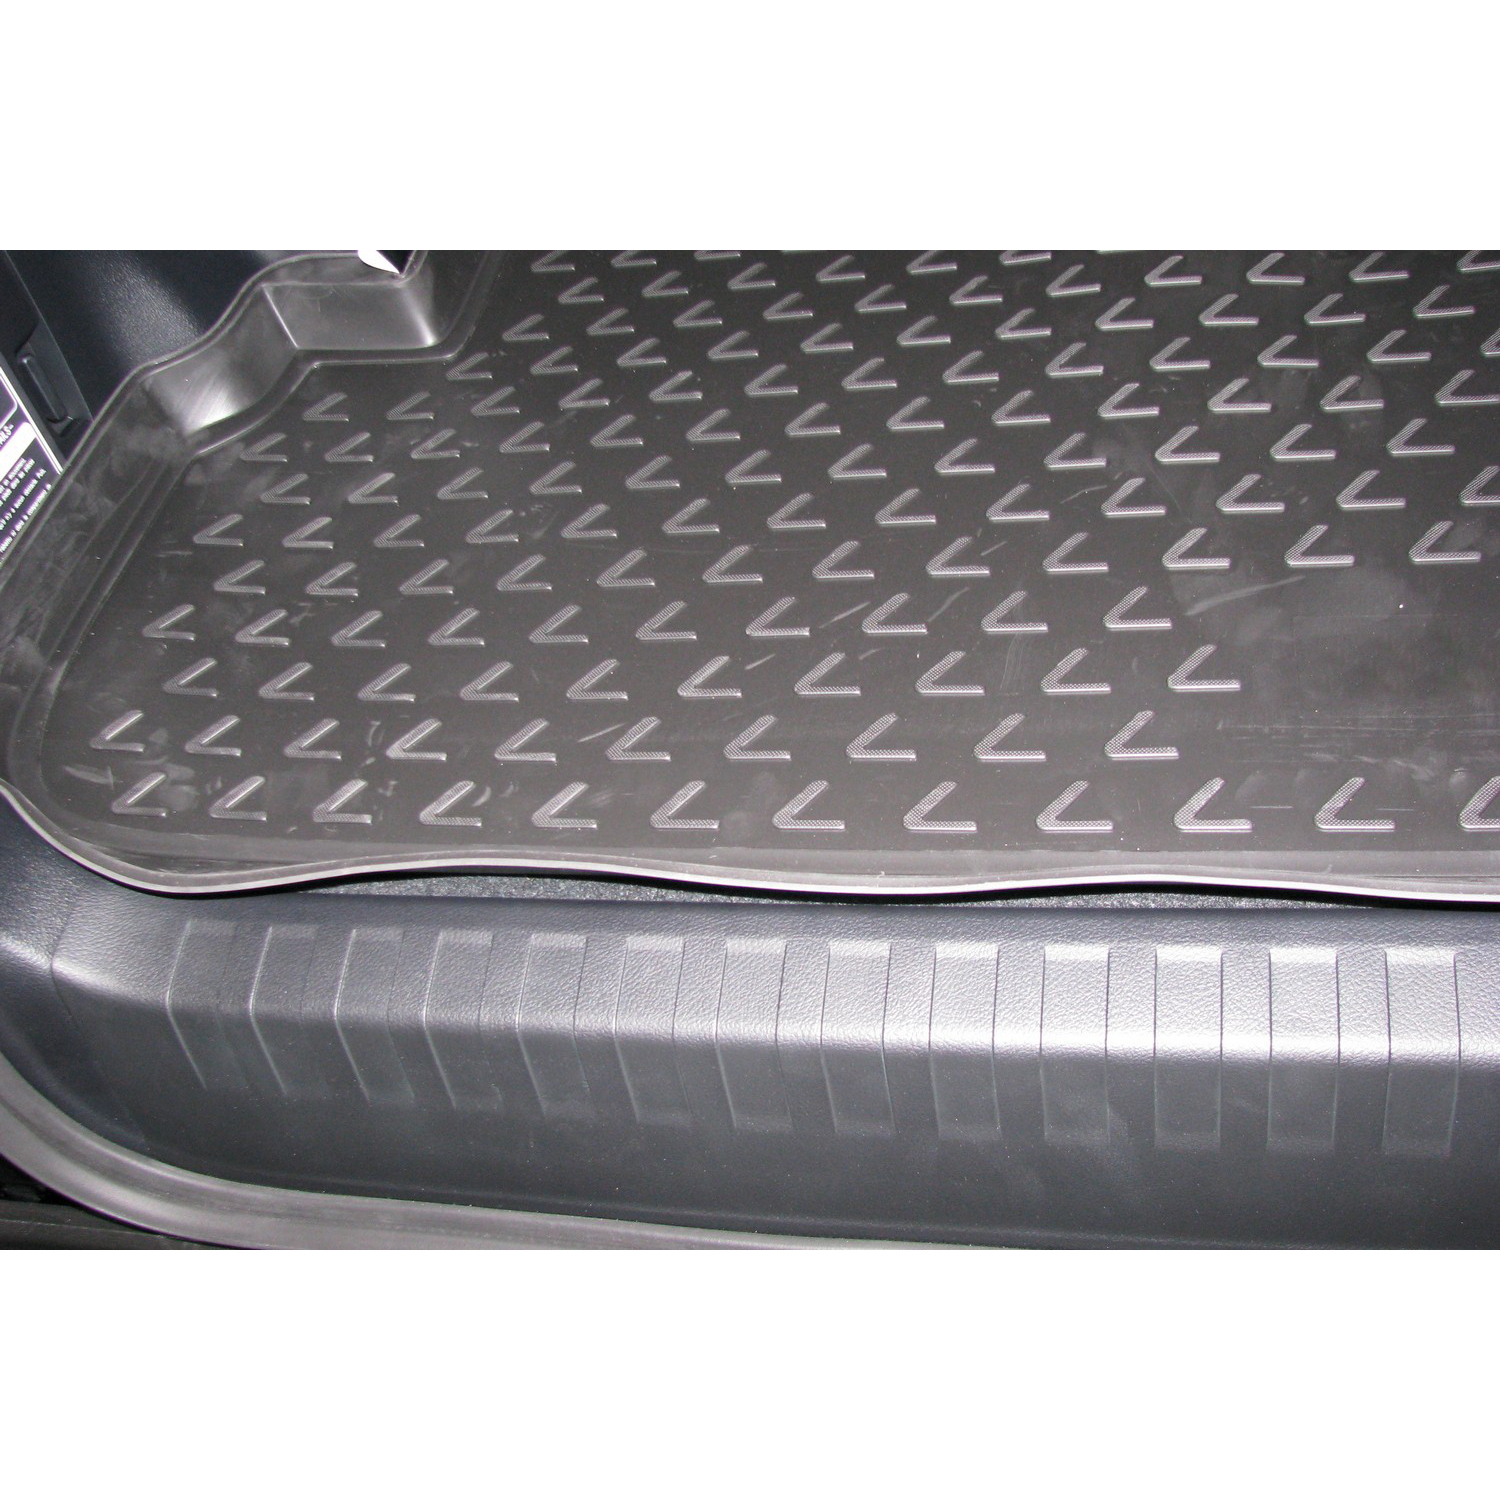 Trunk Mat For LEXUS GX 460 02/2010-> Implement. Lengths. NLC.29.13.B12